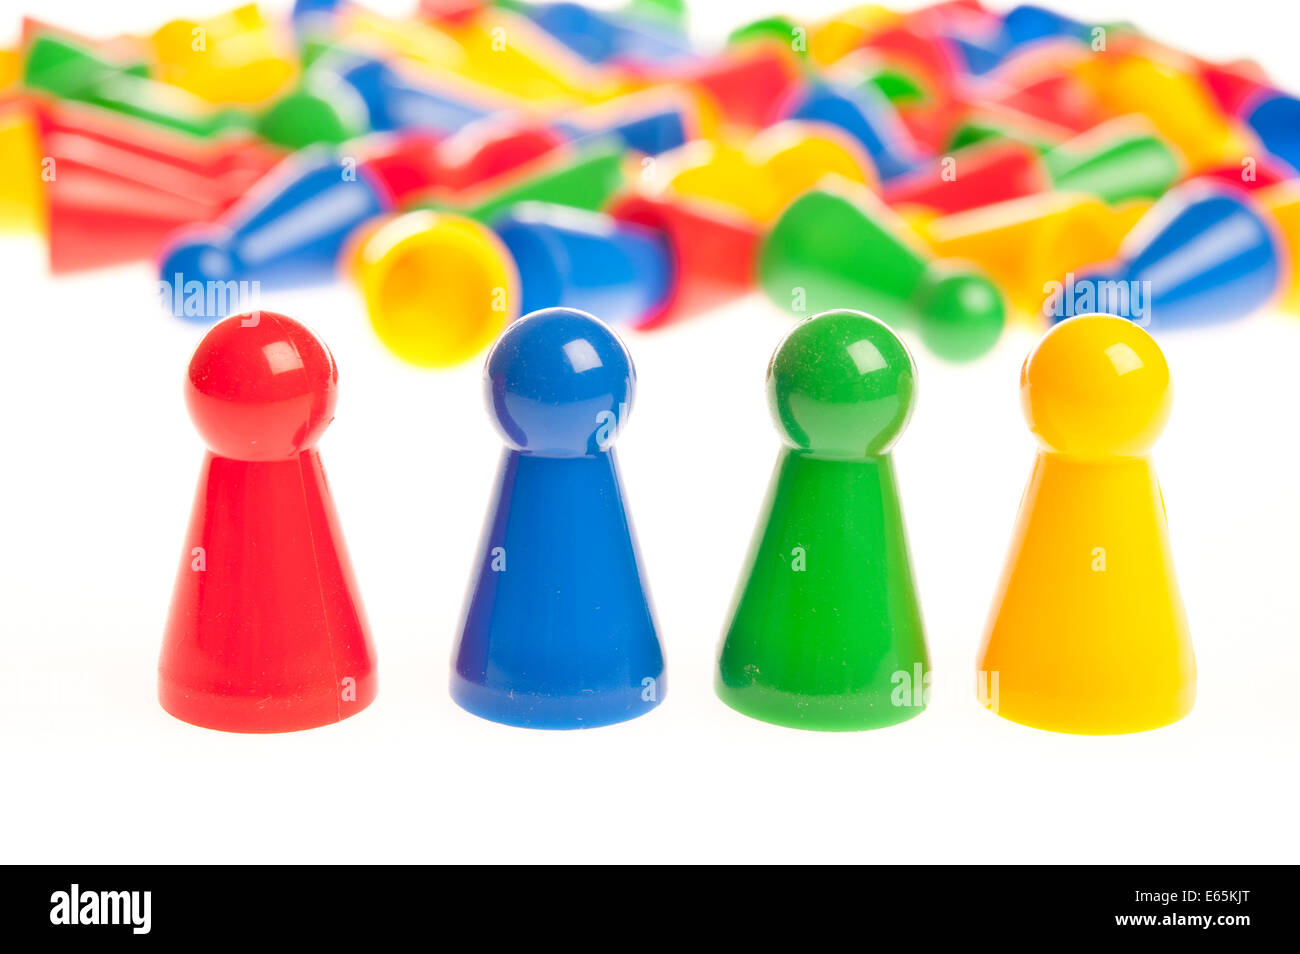 colourful plastic counters - Stock Image